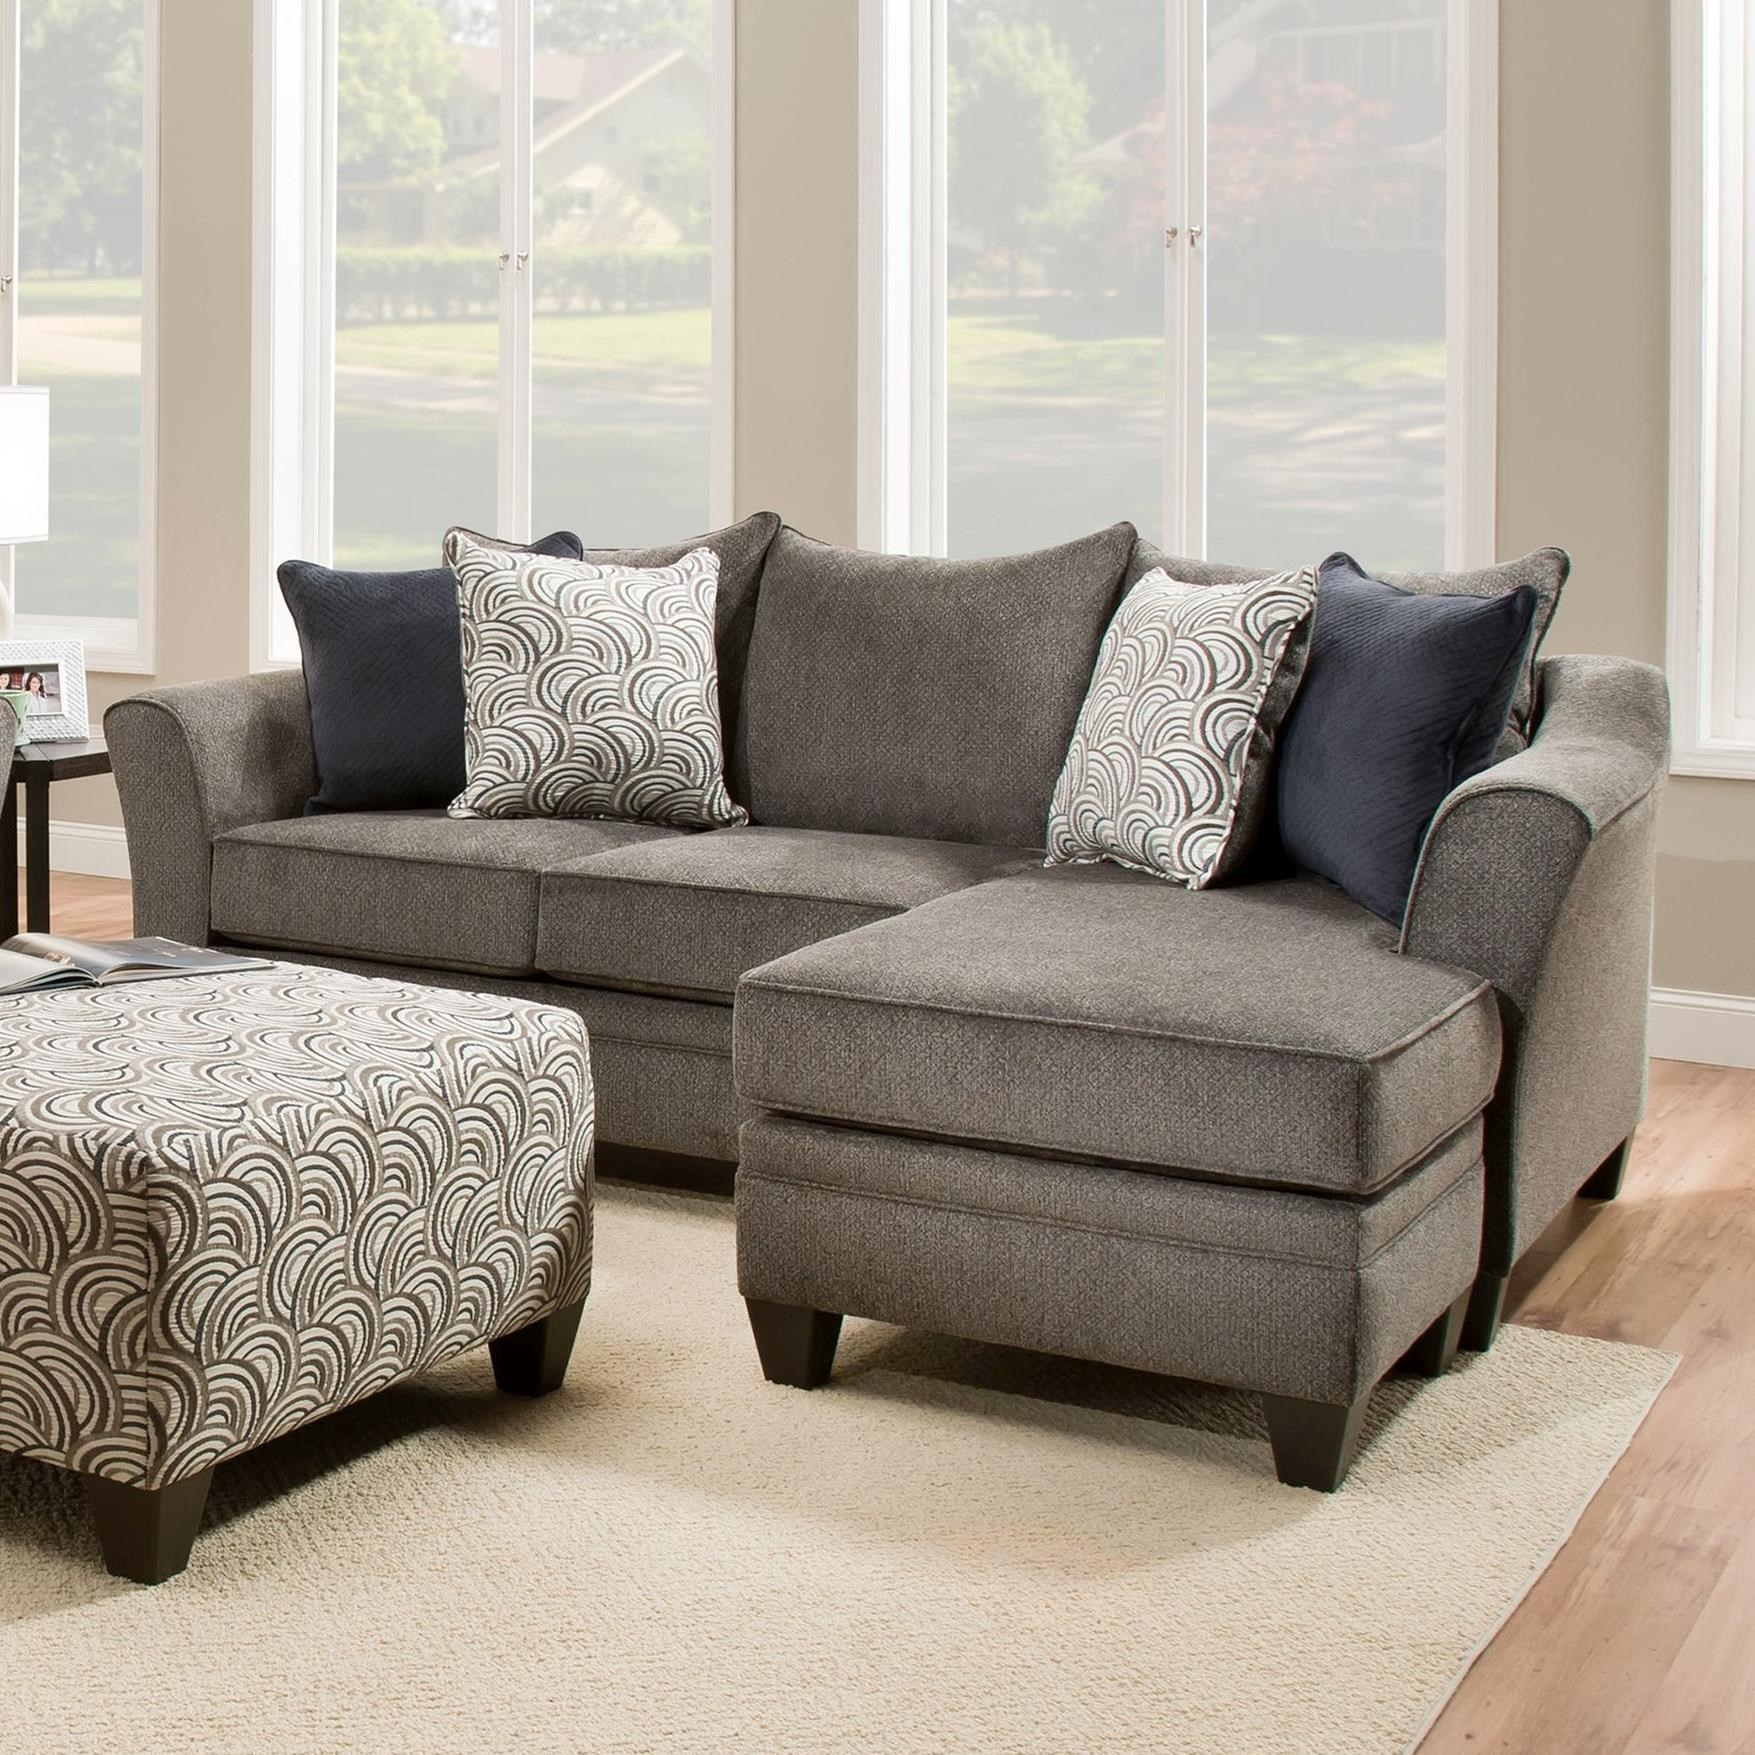 United Furniture Industries 6485 Transitional Sofa Chaise With Flared Arms